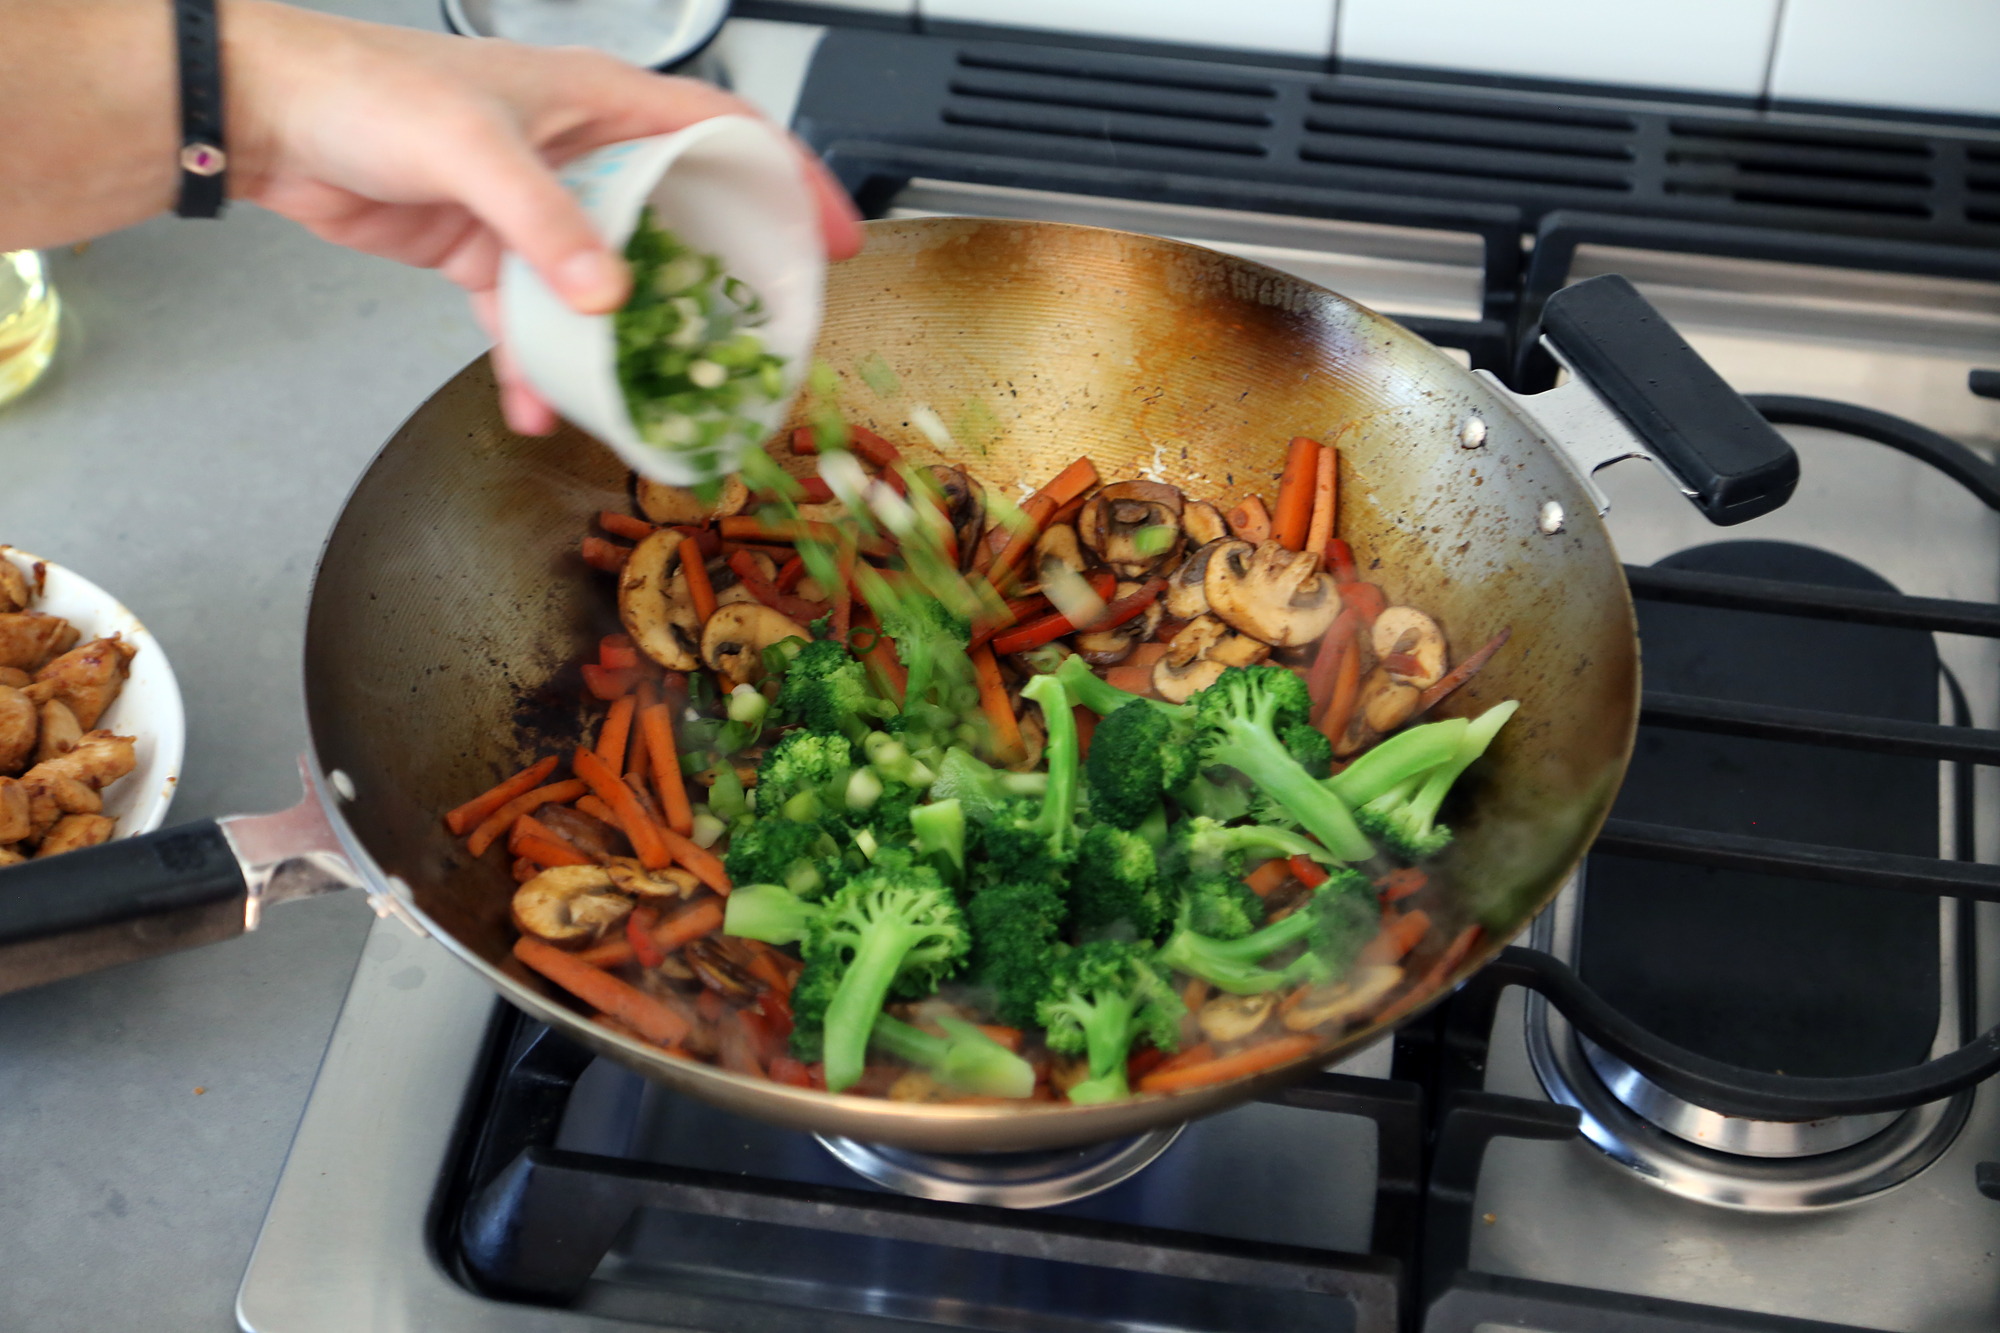 Add the broccoli and green onions and cook until the vegetables are all tender, about 3 minutes.